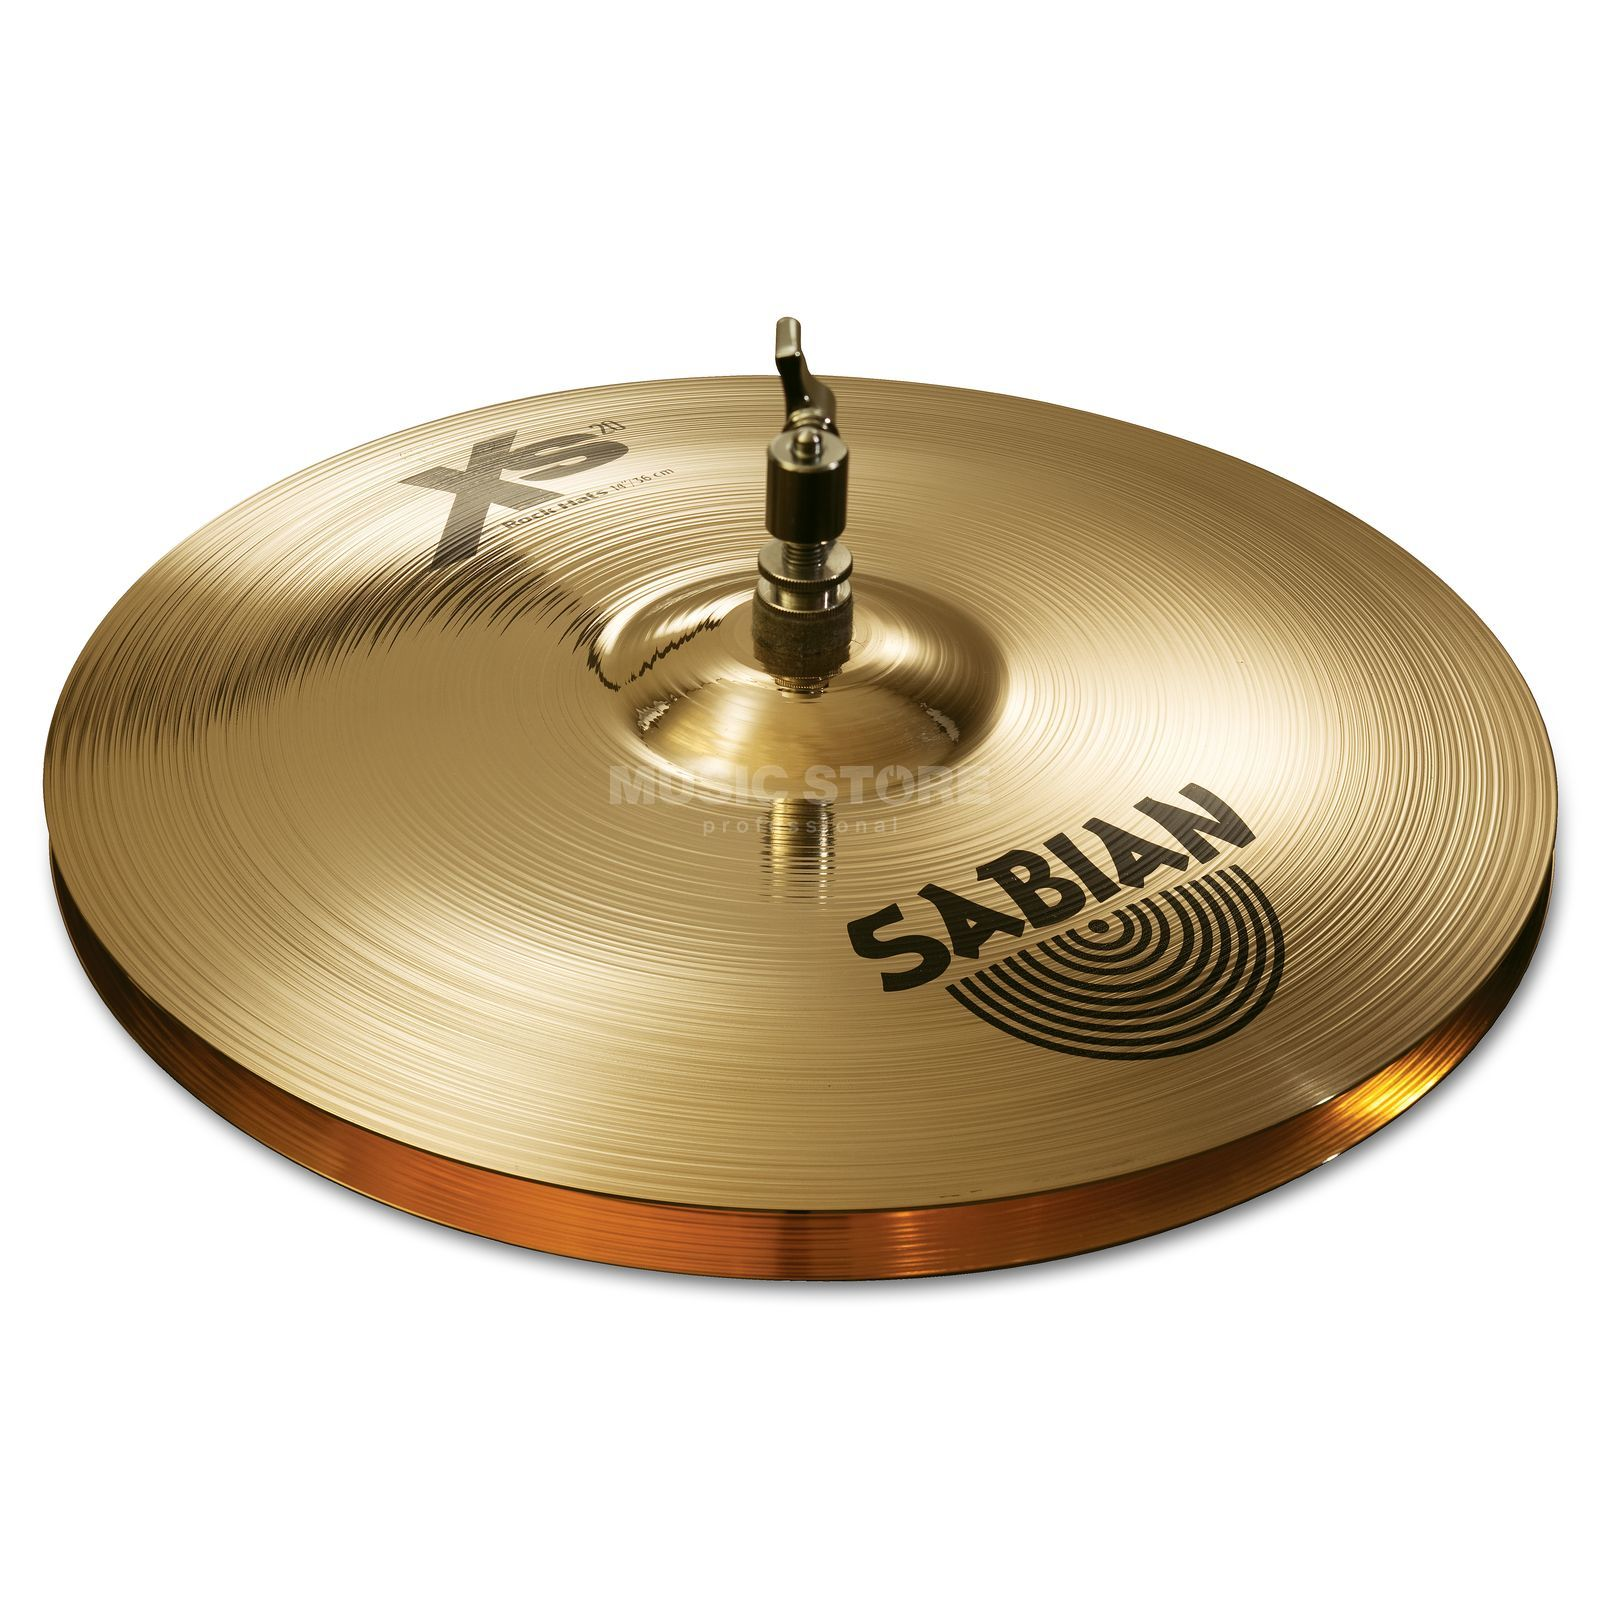 "Sabian XS20 Rock HiHat 14"", Brilliant Finish Produktbild"